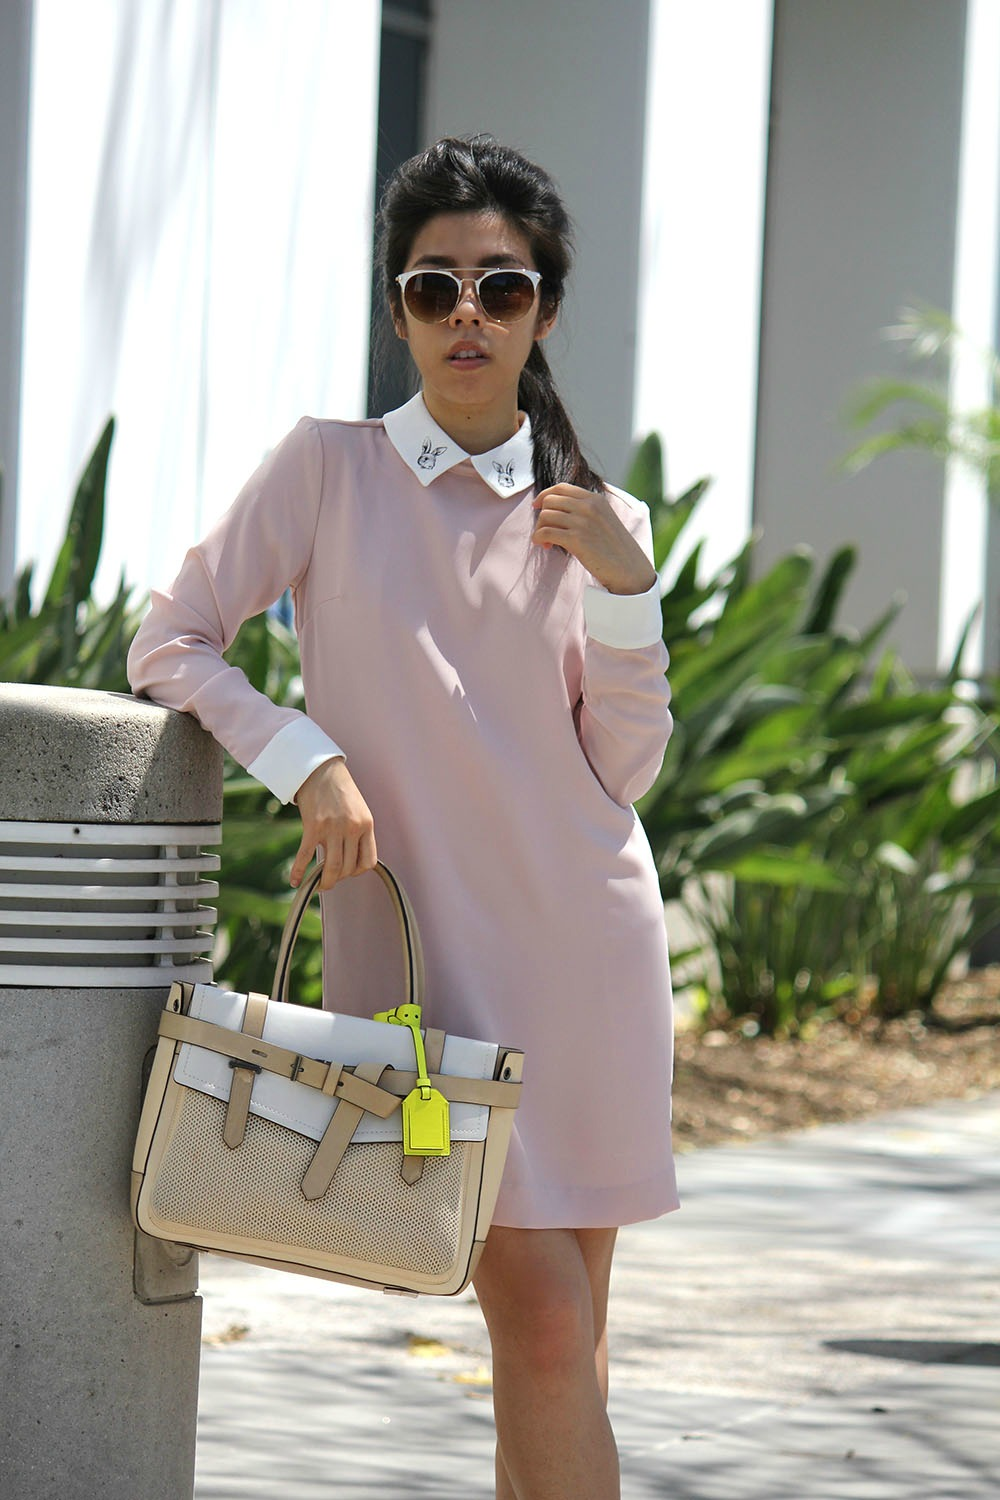 Adrienne Nguyen_Invictus_Fashion Blogger_Student Fashion Blogger_What to Wear to an OSCE